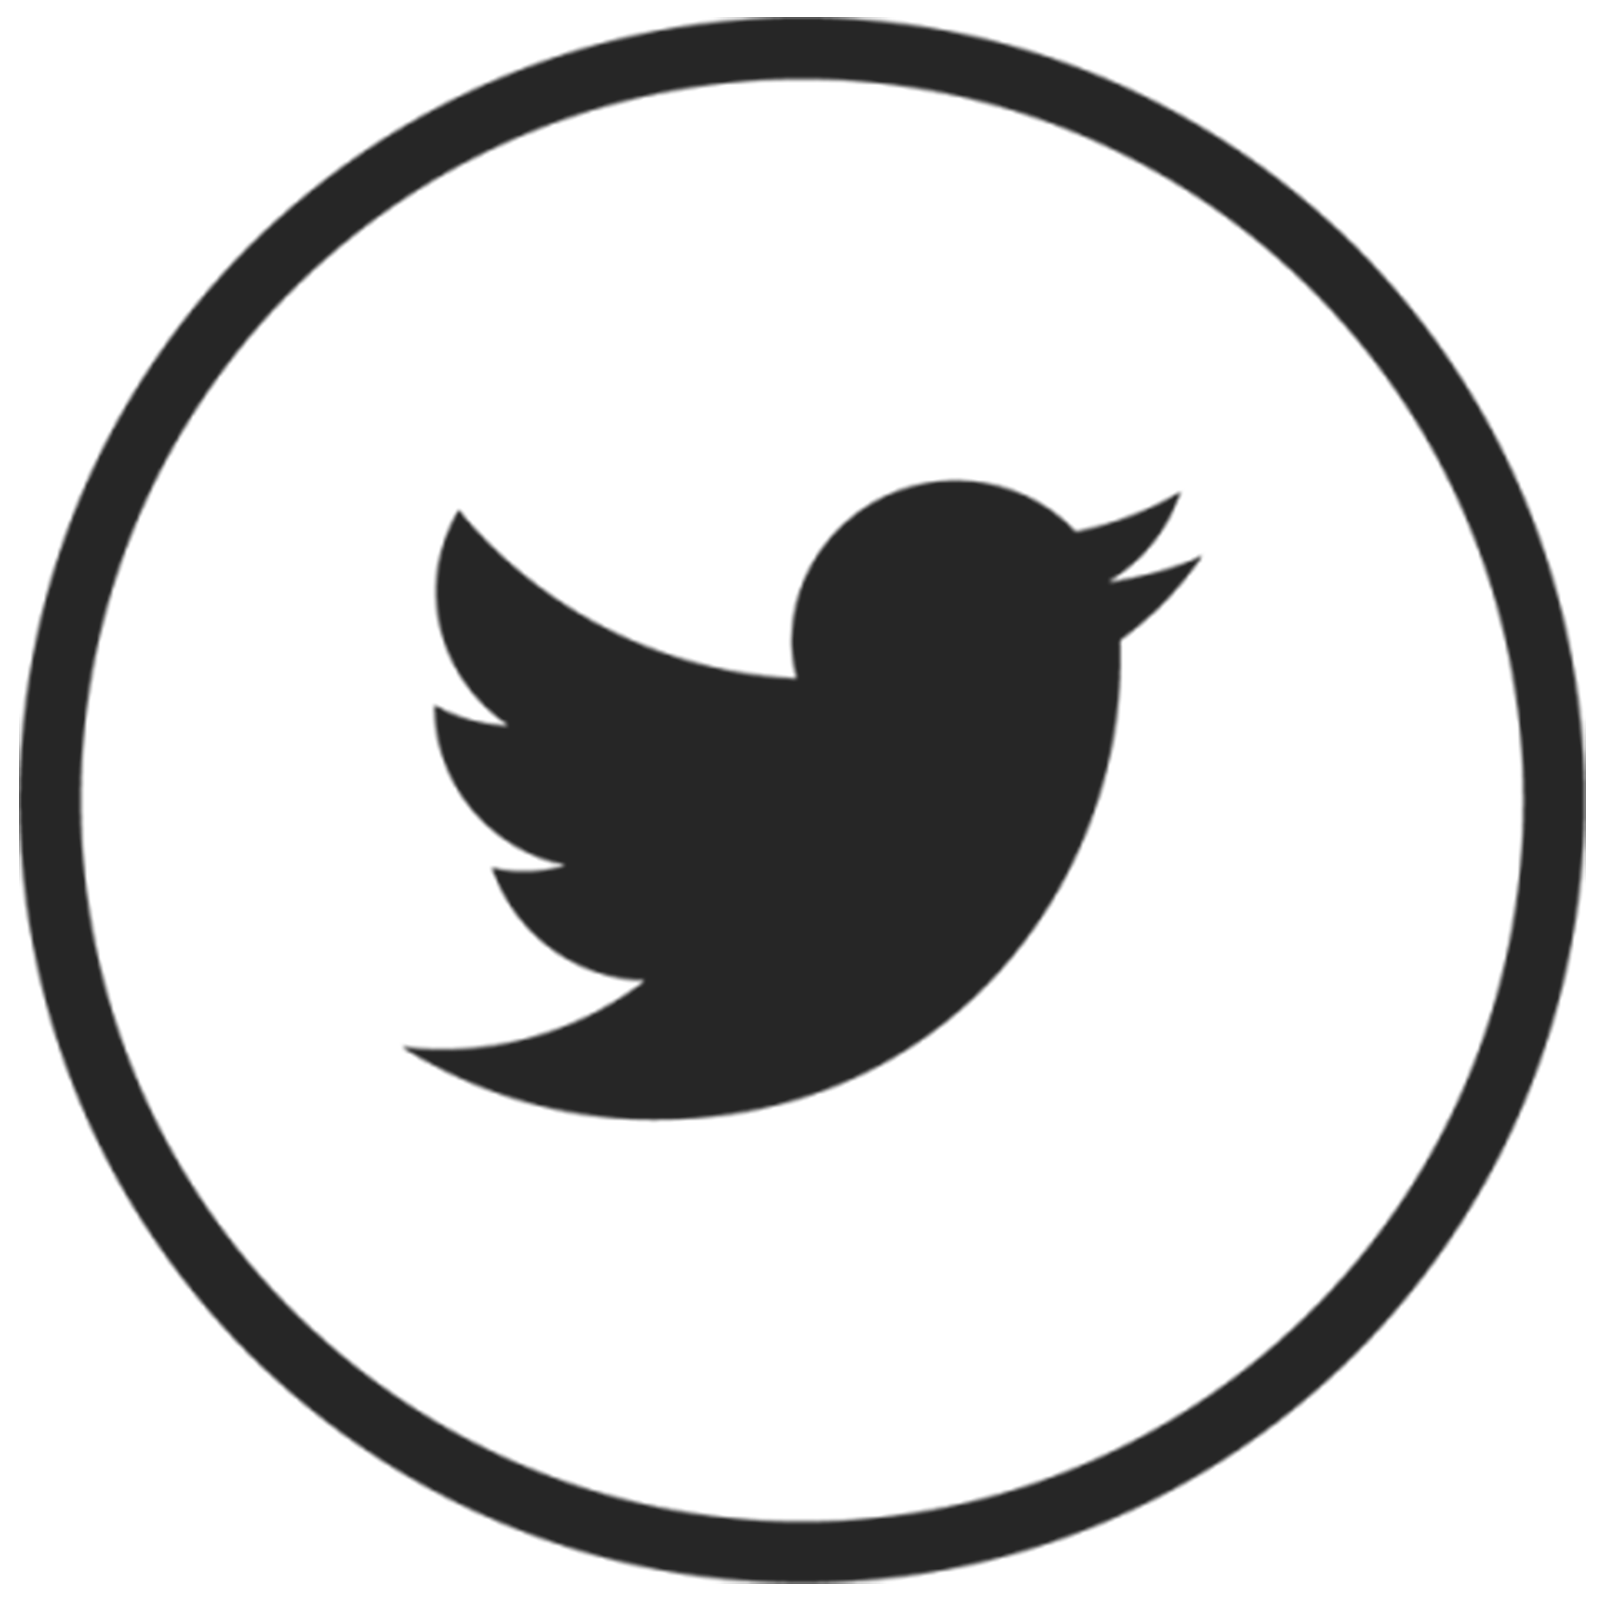 TwitteriCON2.png